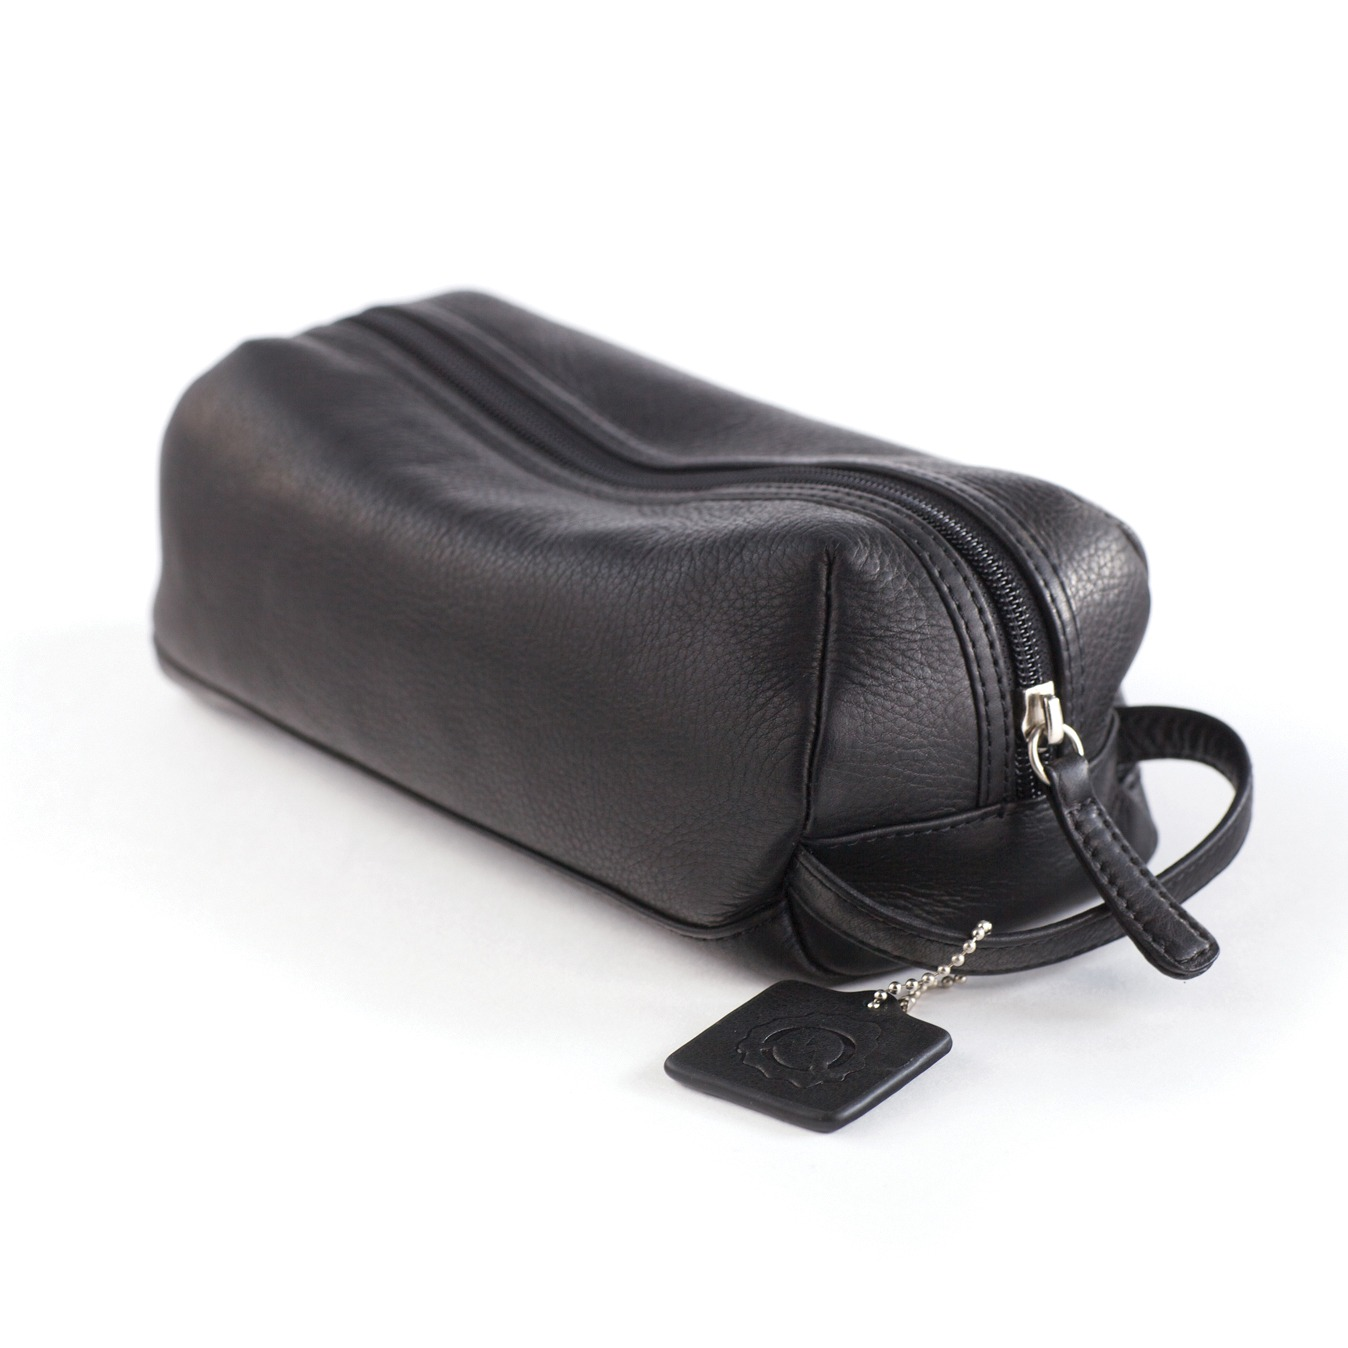 Osgoode Marley #2015 Small Travel Kit